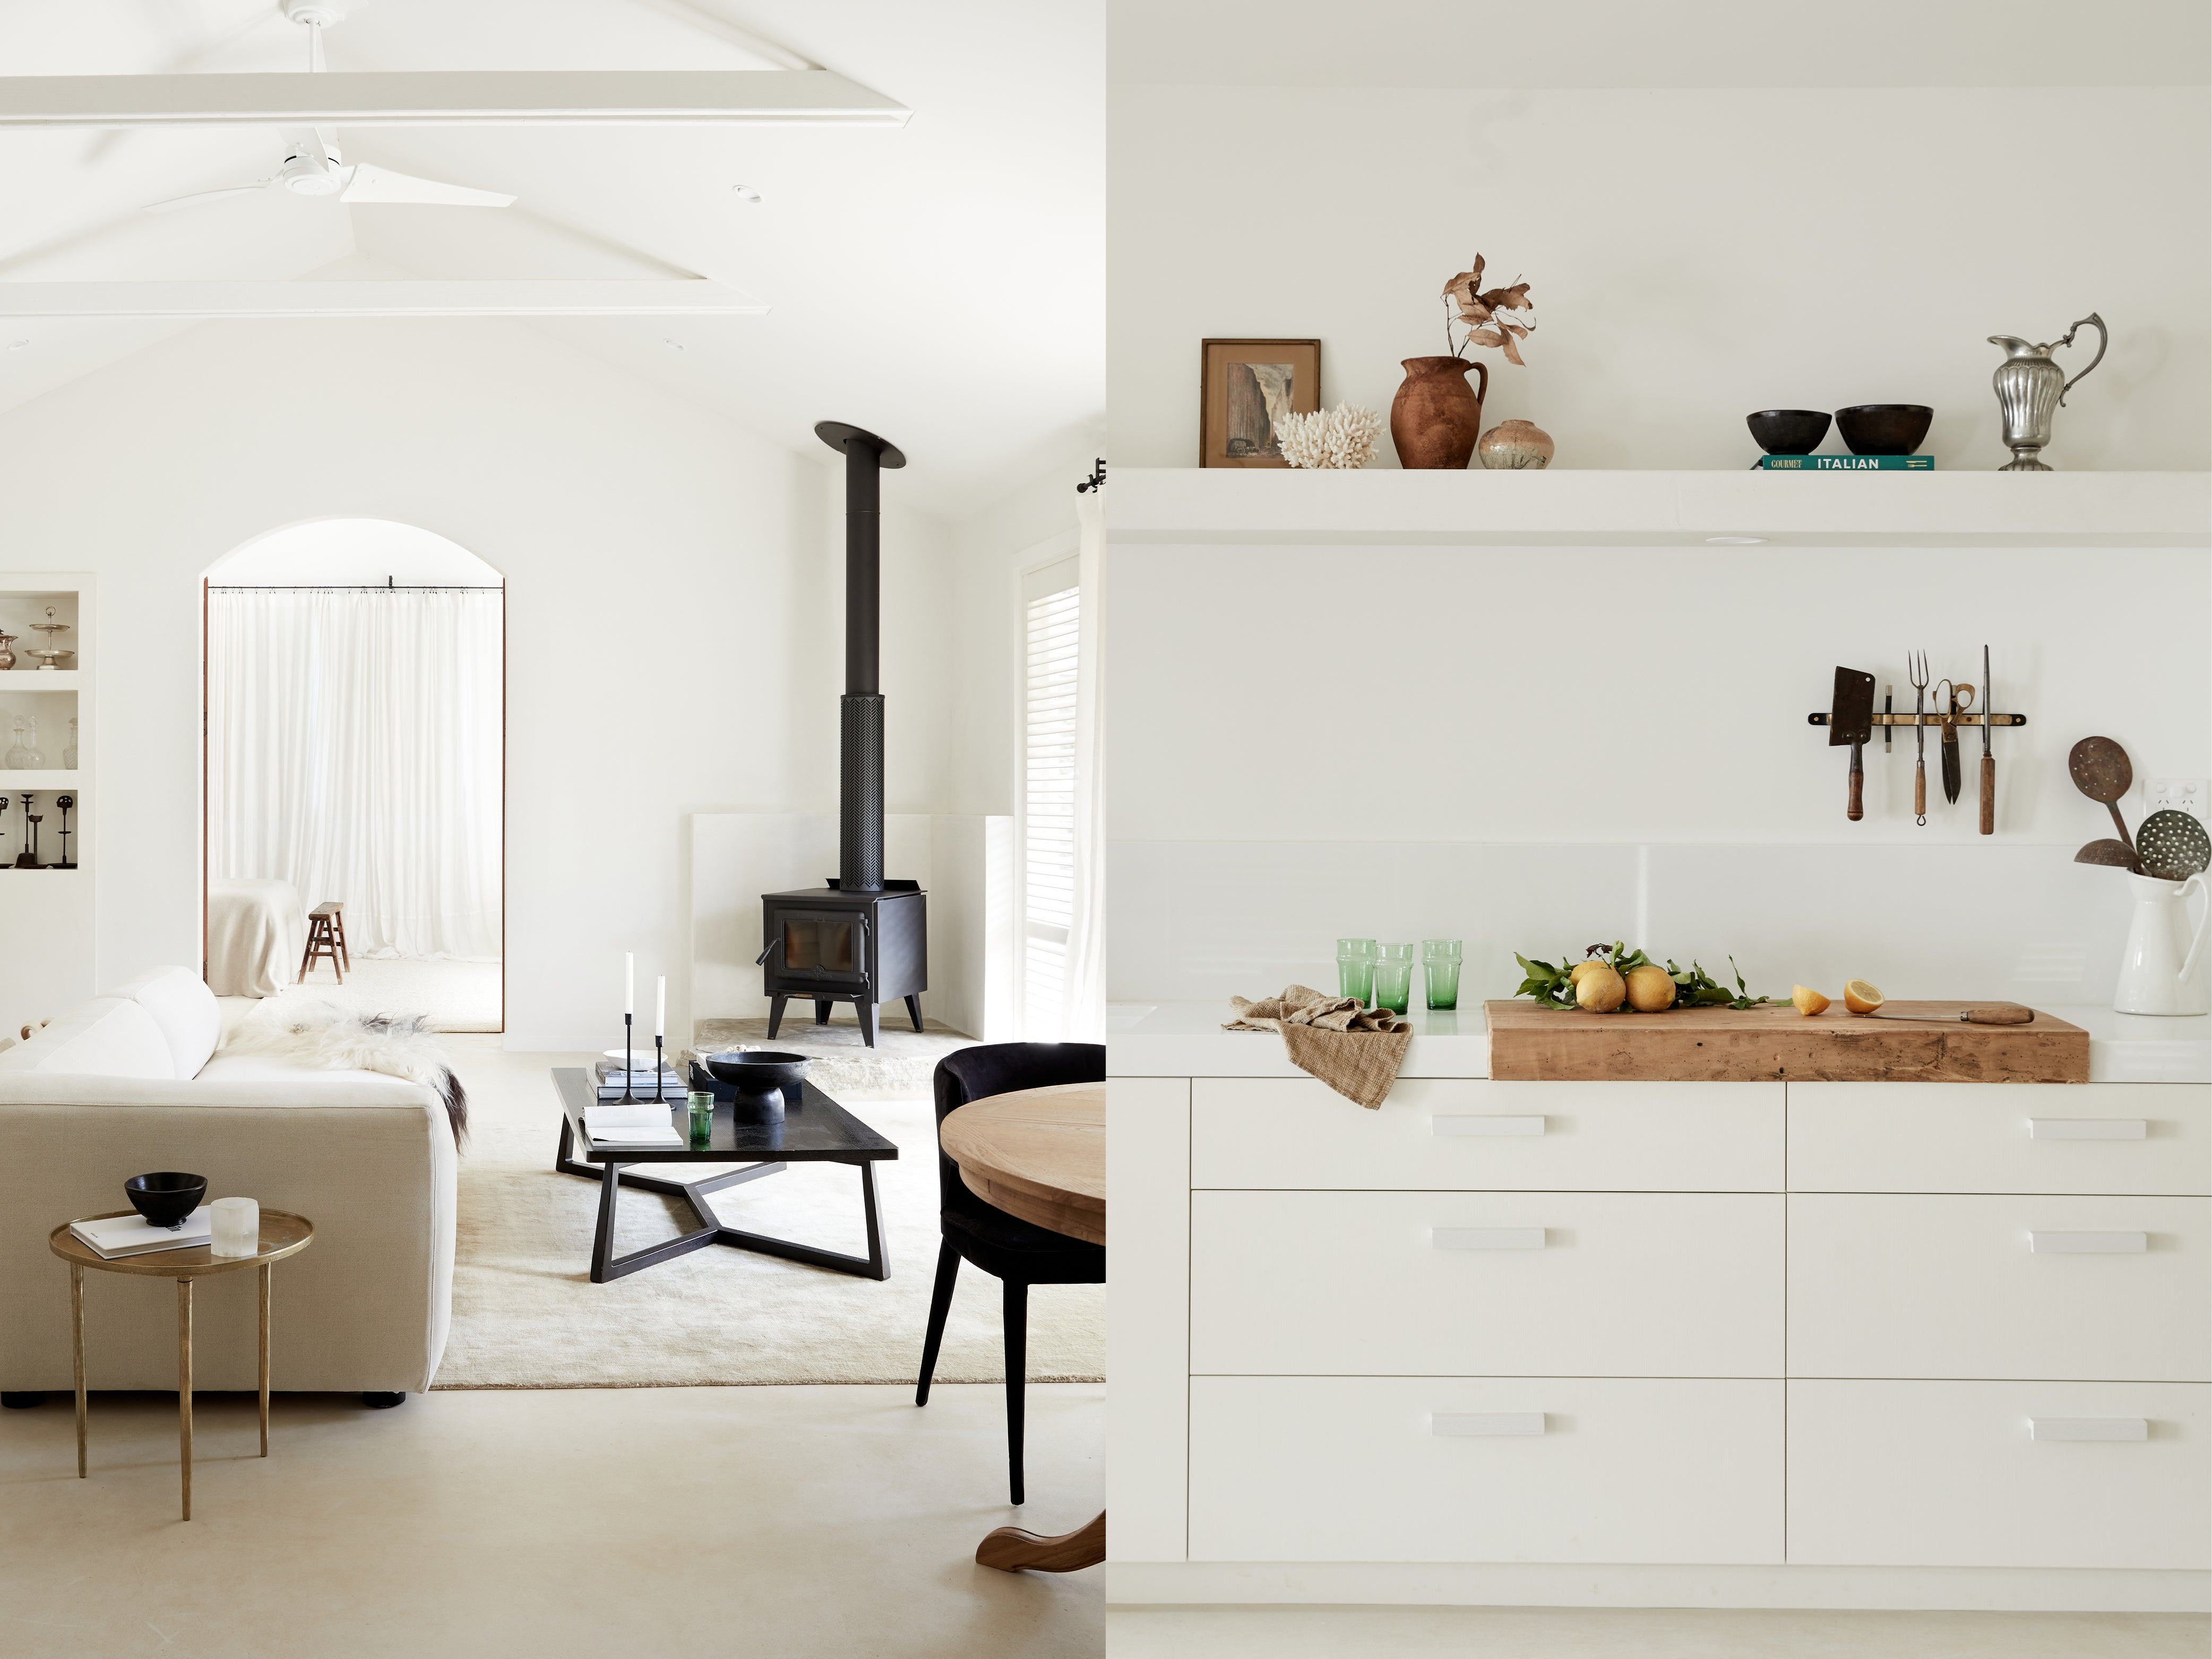 Design work done by Mel Gibbons of Avenue Twenty Two - living room in neutral tones and white kitchen